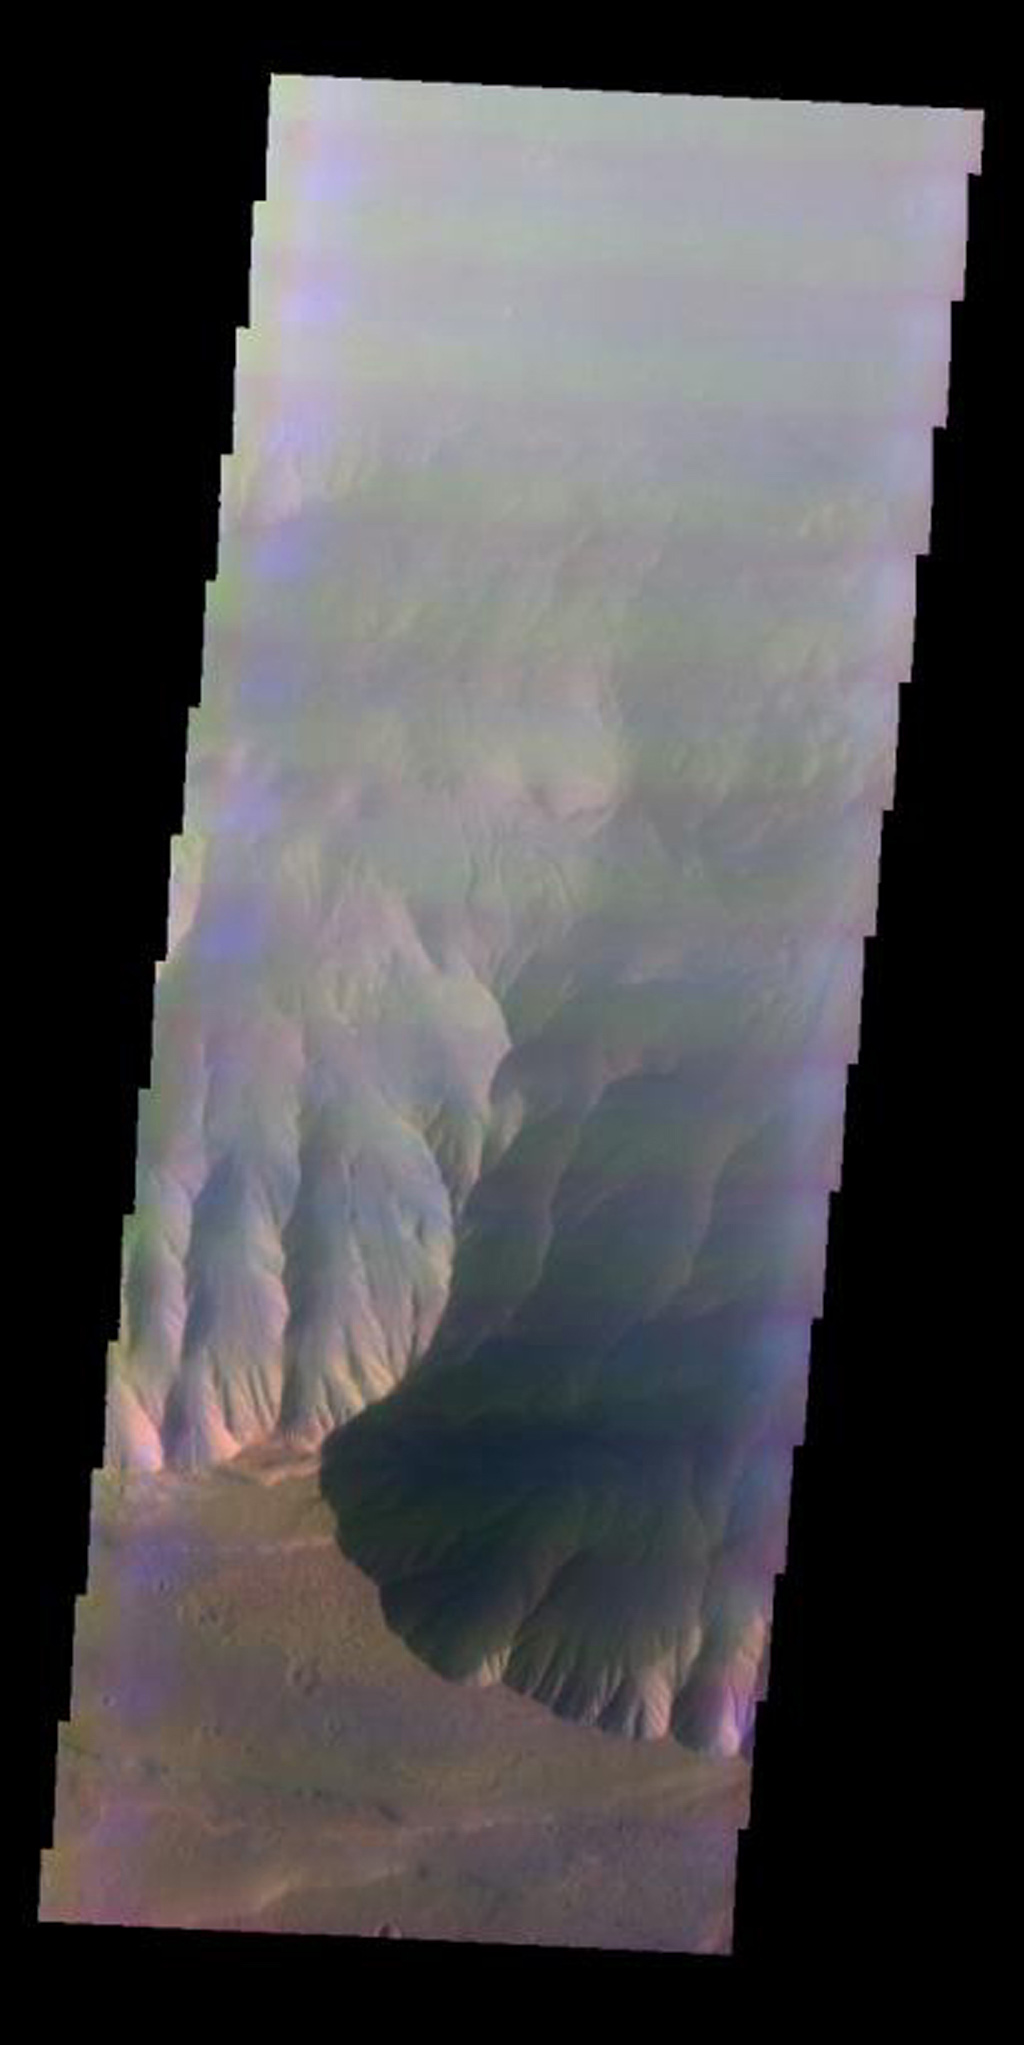 This false-color image released on June 4, 2004 from NASA's 2001 Mars Odyssey was collected March 12, 2003 during southern winter season. The image shows an area in the Coprates Chasma region on Mars.